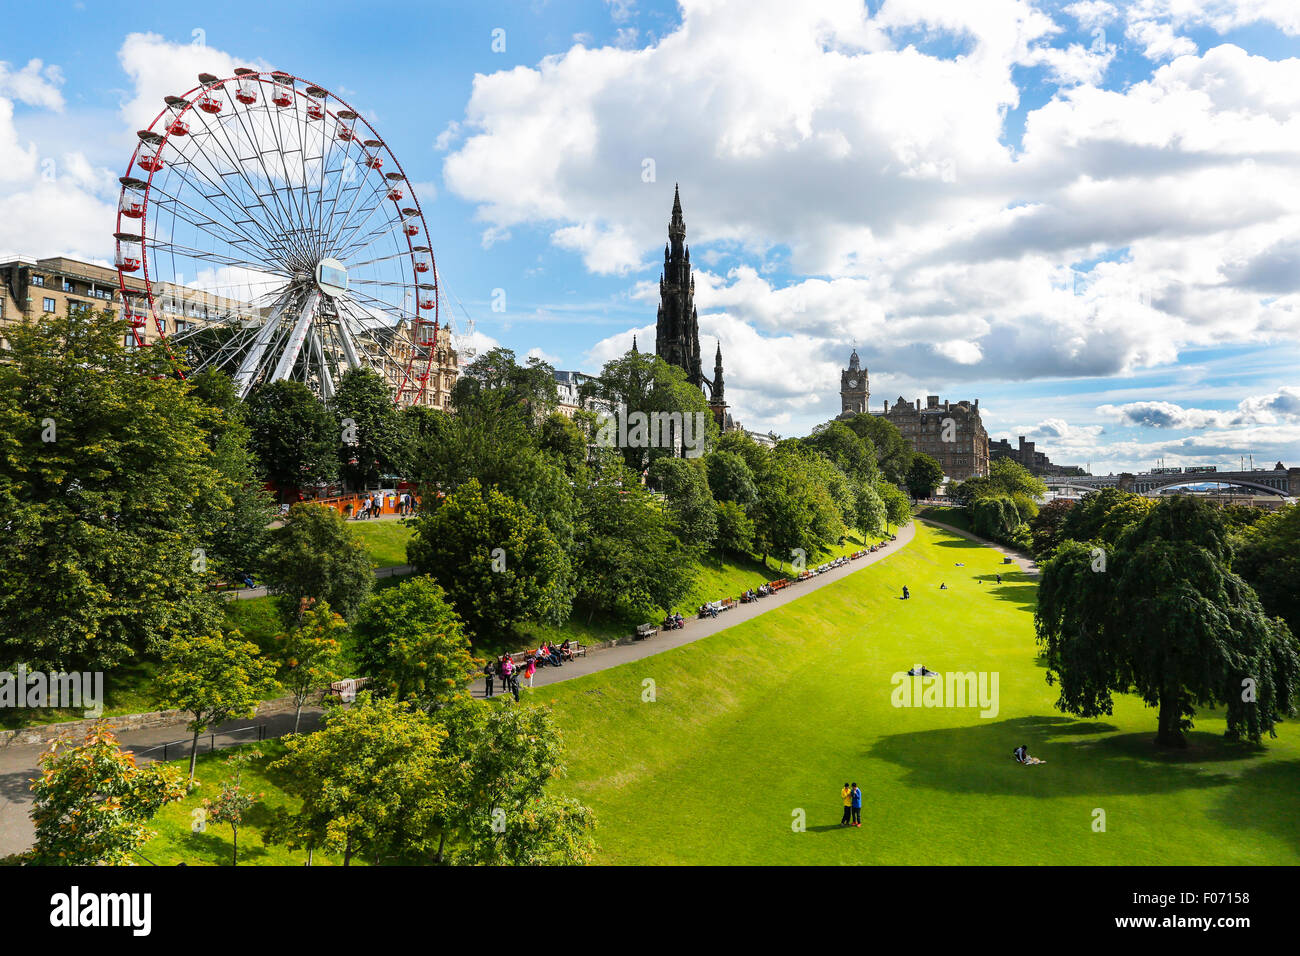 Princes Street Gardens, Edinburgh with a view to Scott Monument and the Princes Street Ferris wheel. Scotland, UK - Stock Image